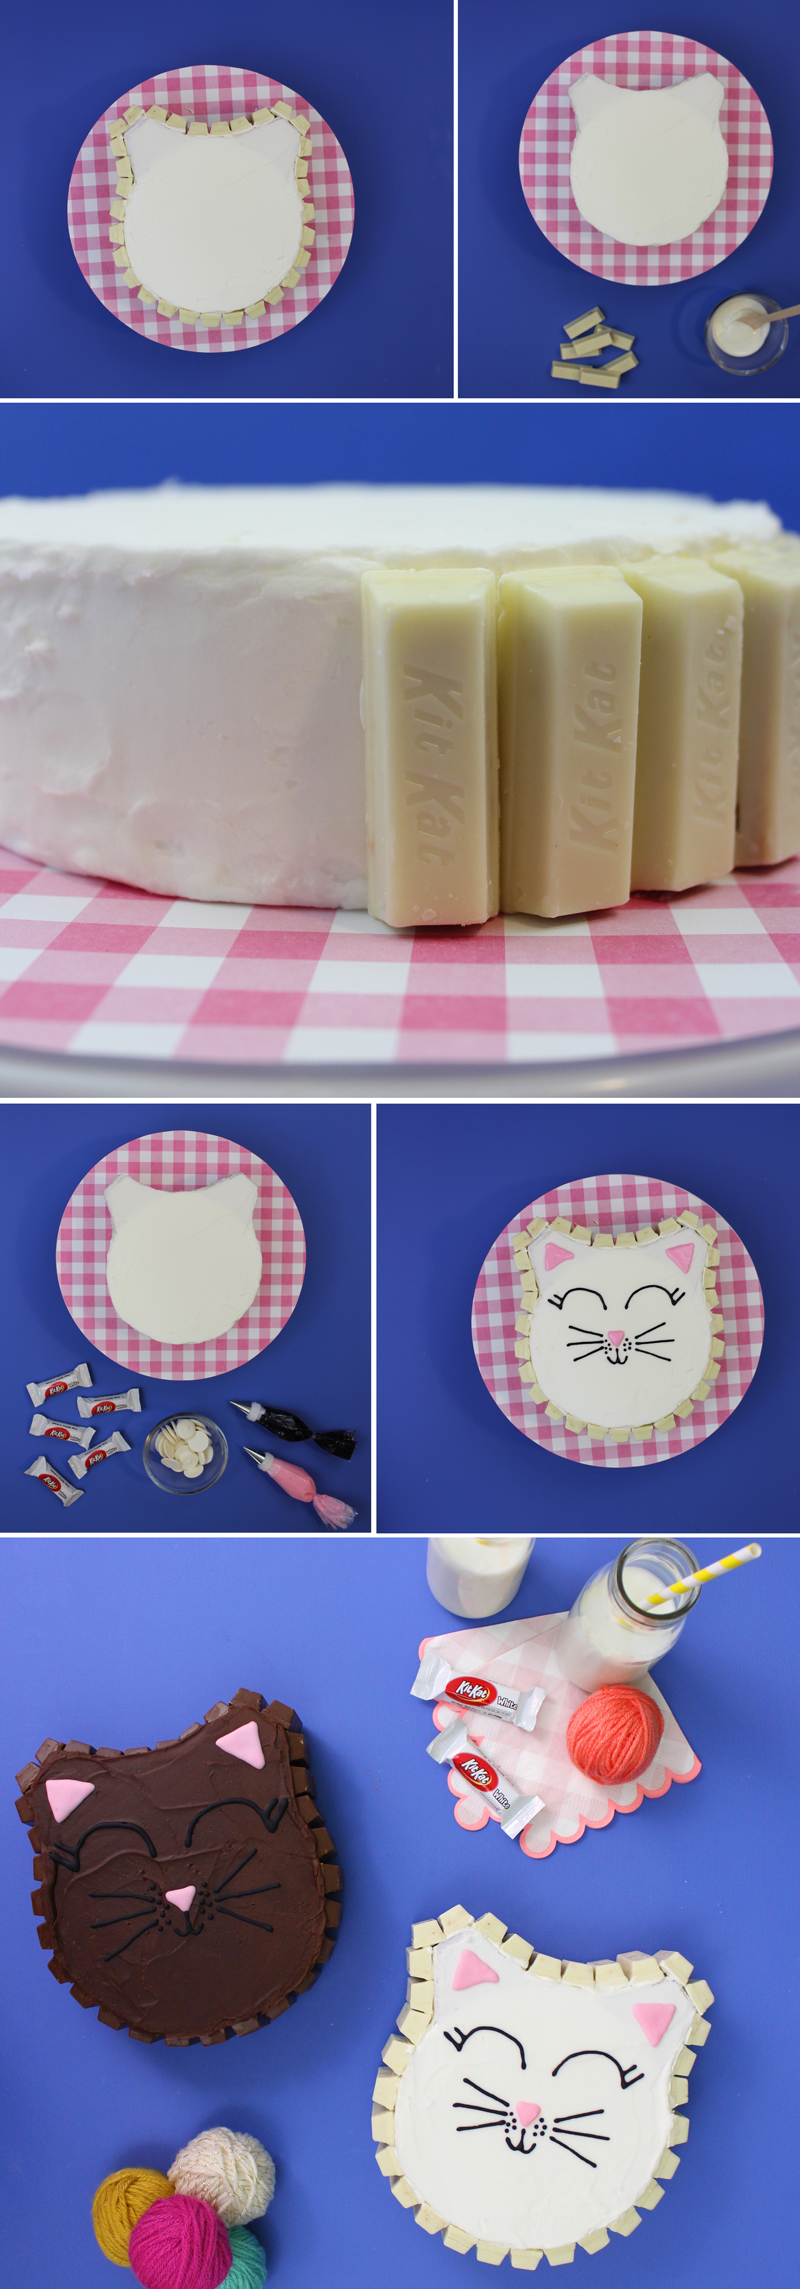 Kit Kat Cake Step by Step Instructions